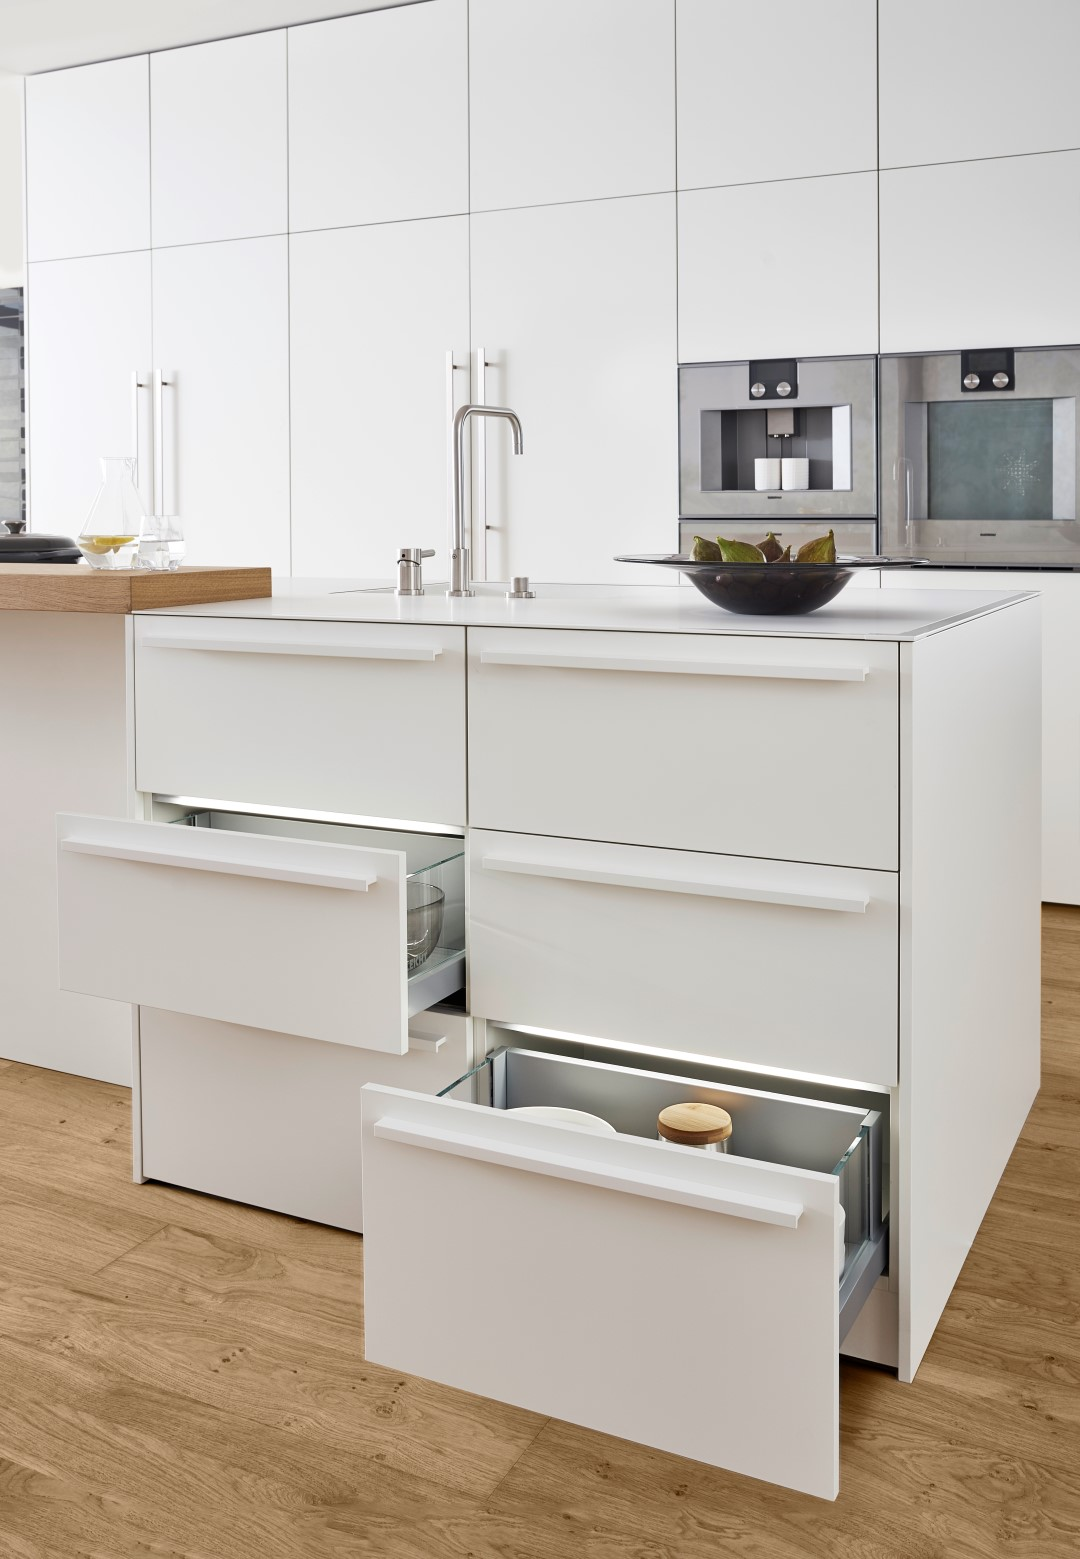 DESIGN KITCHEN | Cocinas modernas